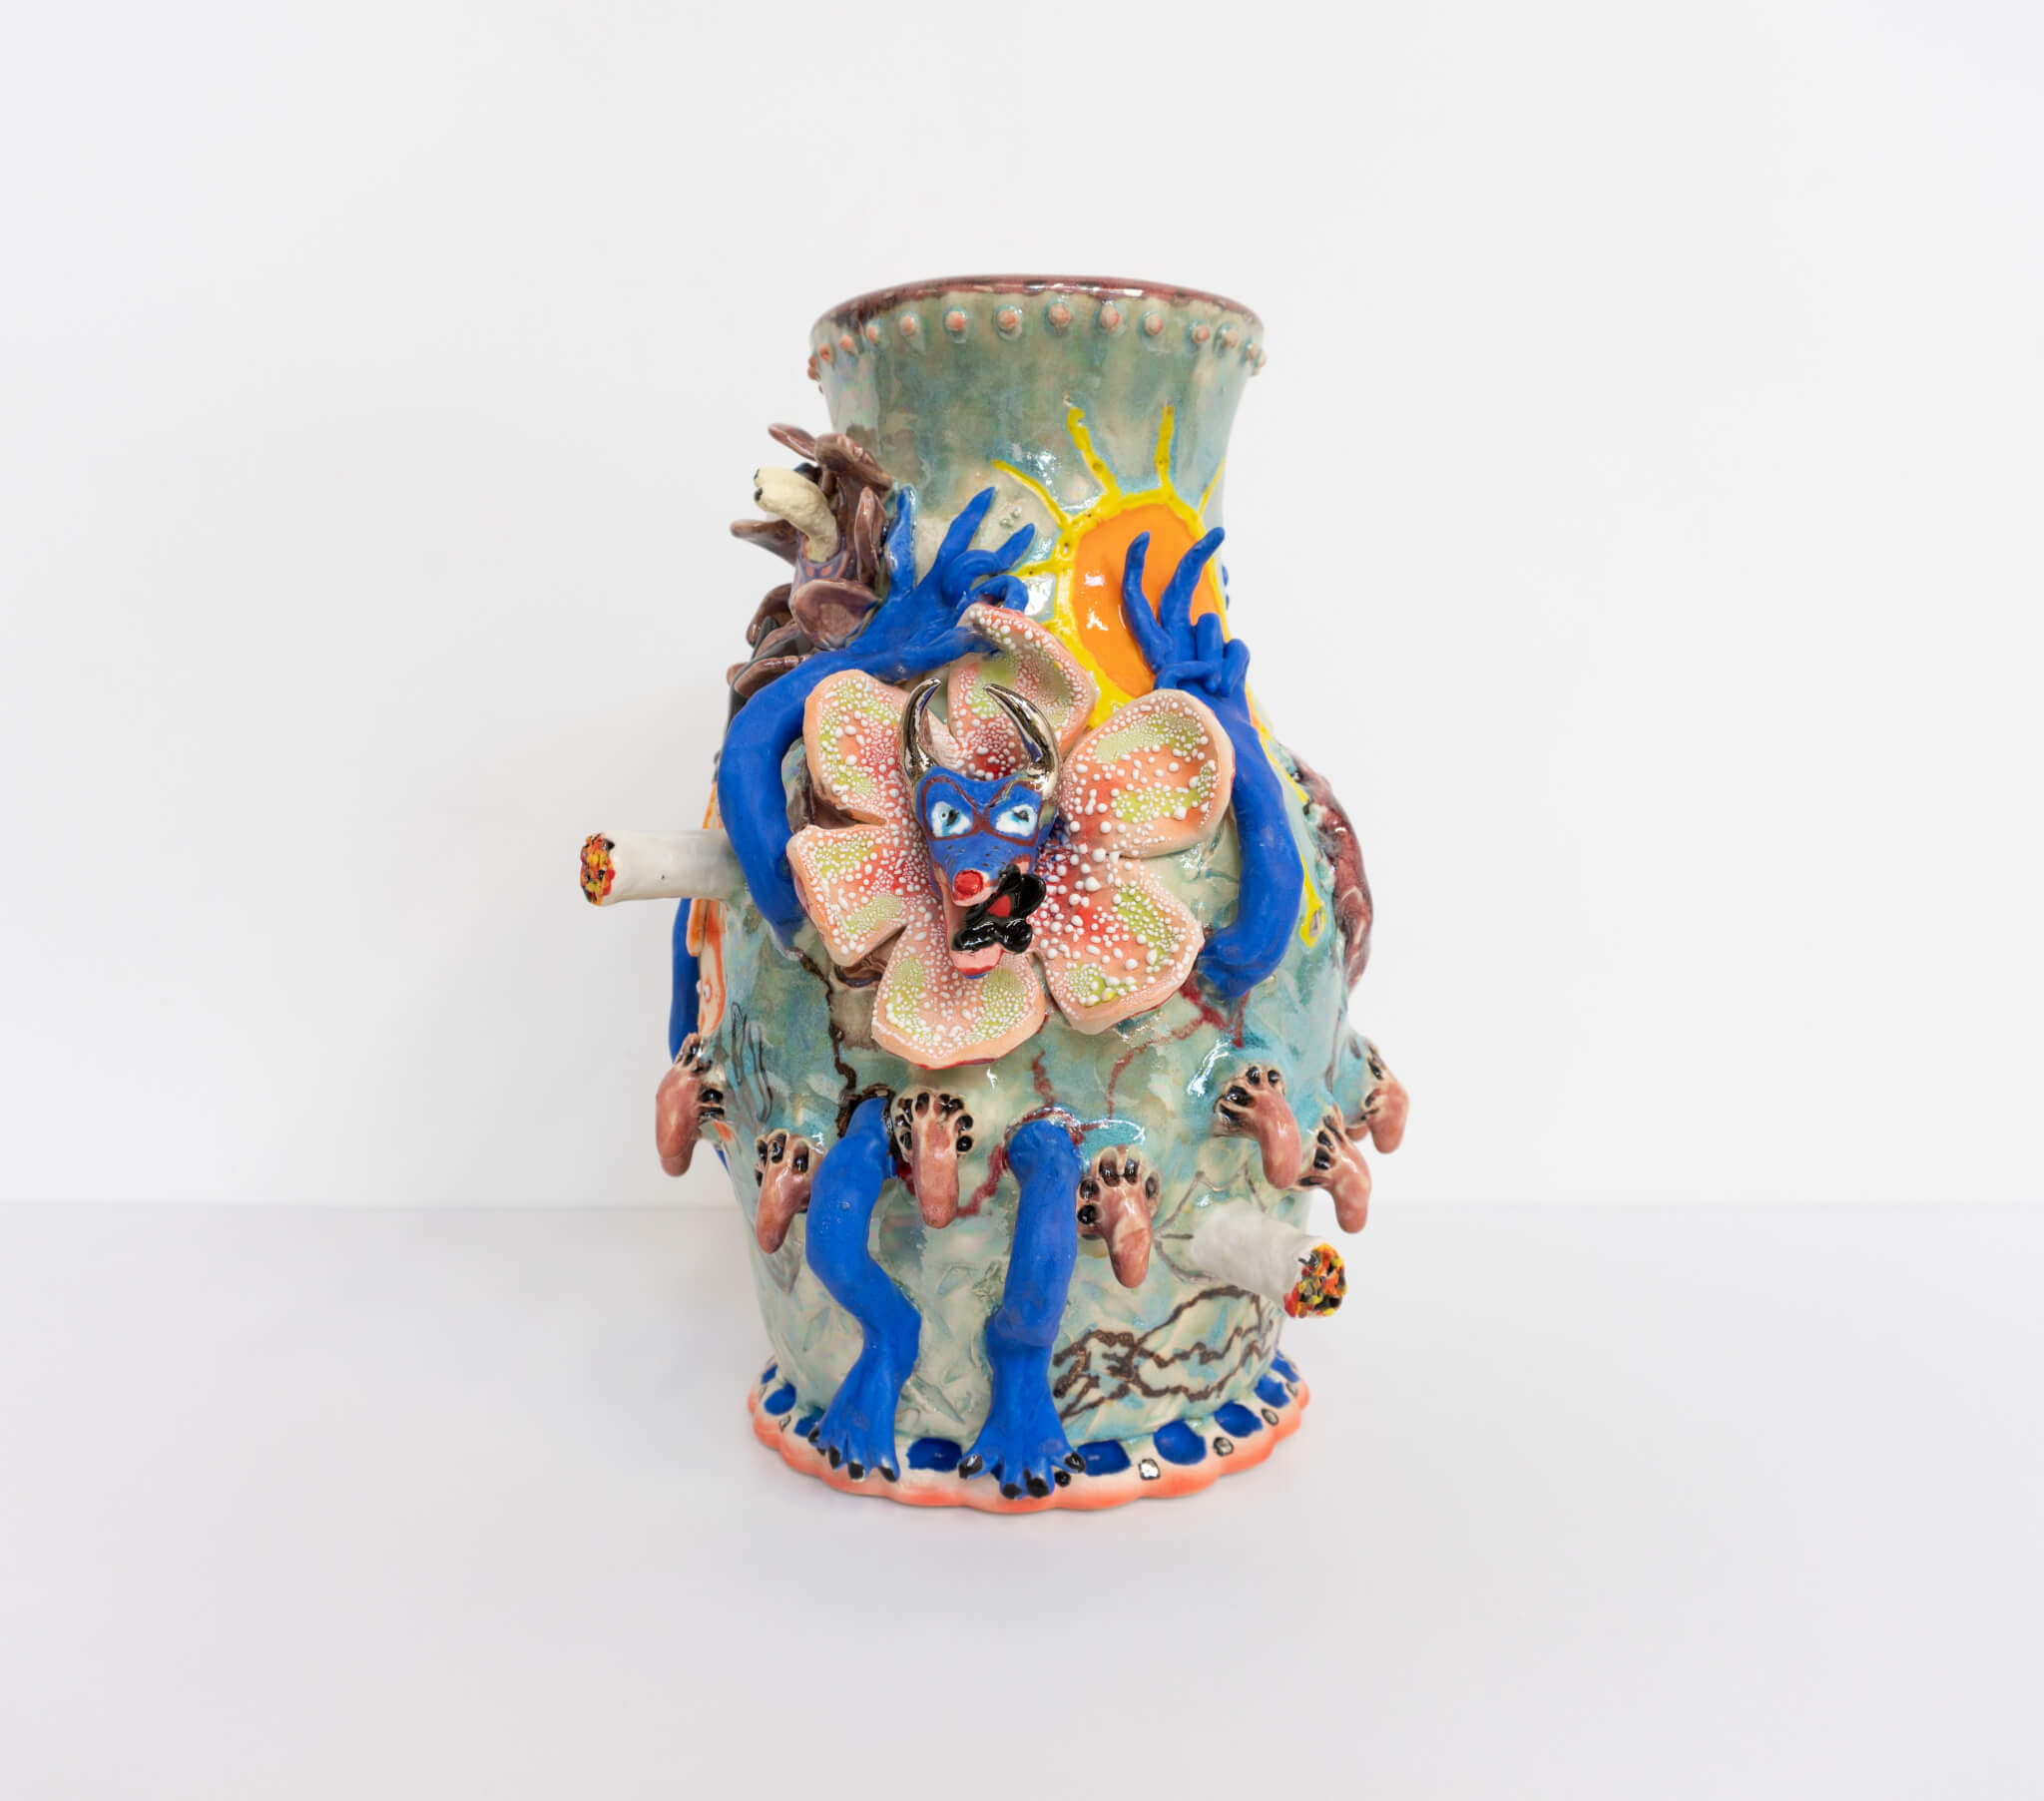 Farrag, Ice Blue Coyote Jug, 2019 (SF 19.026) A